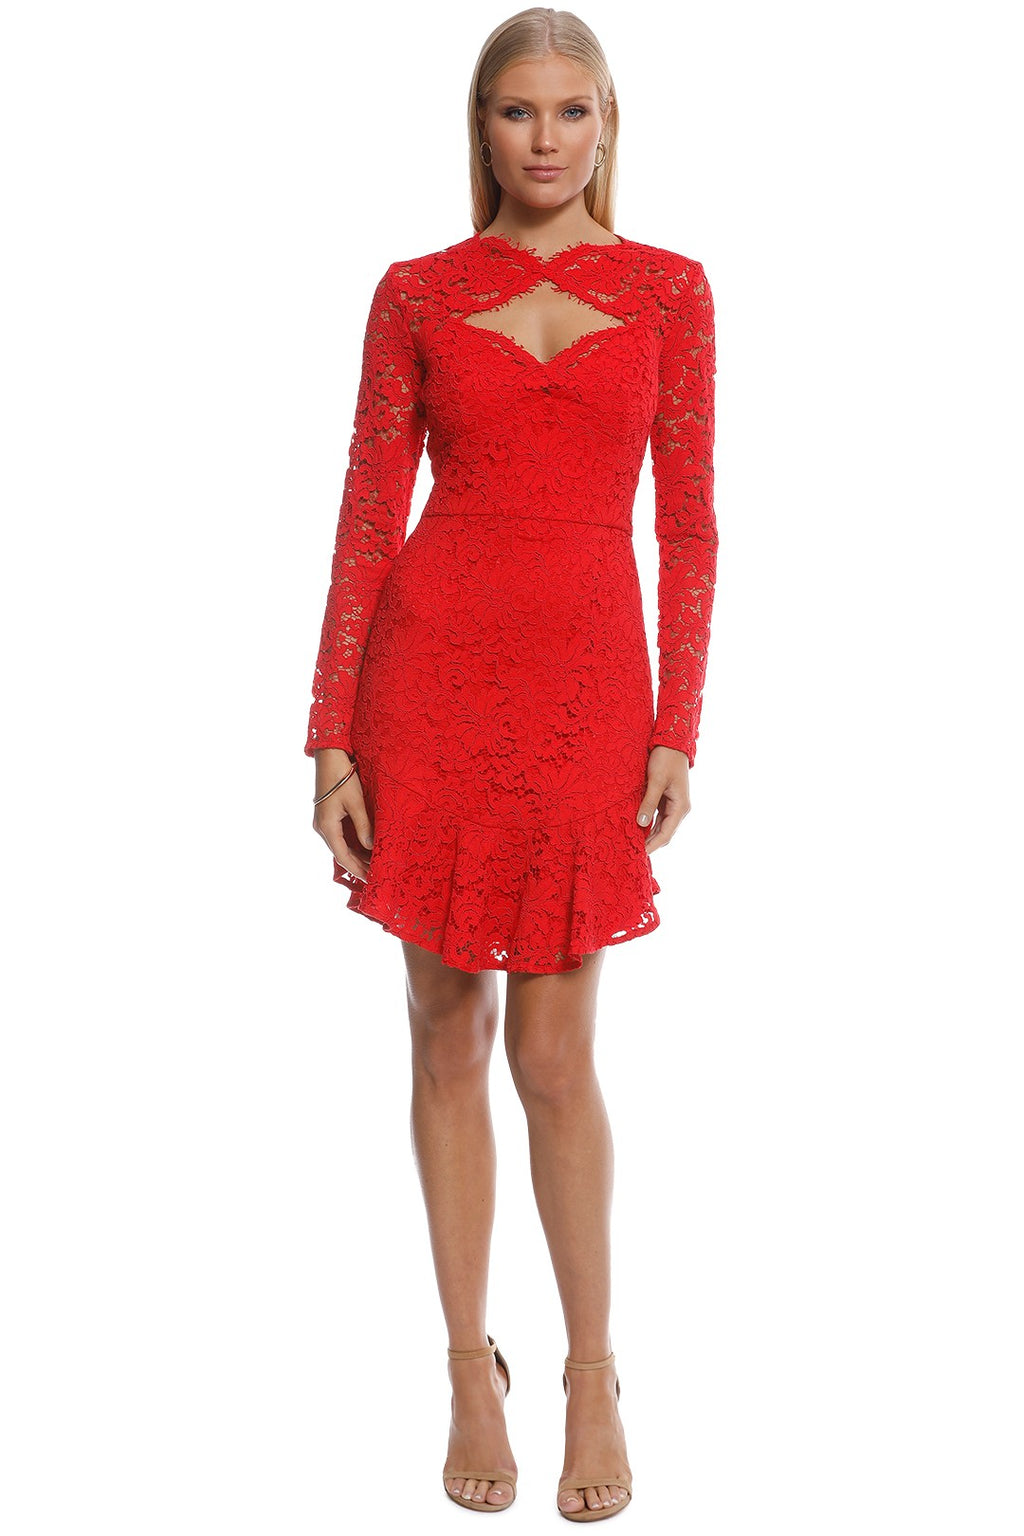 Lover Petal Flip Dress in Red